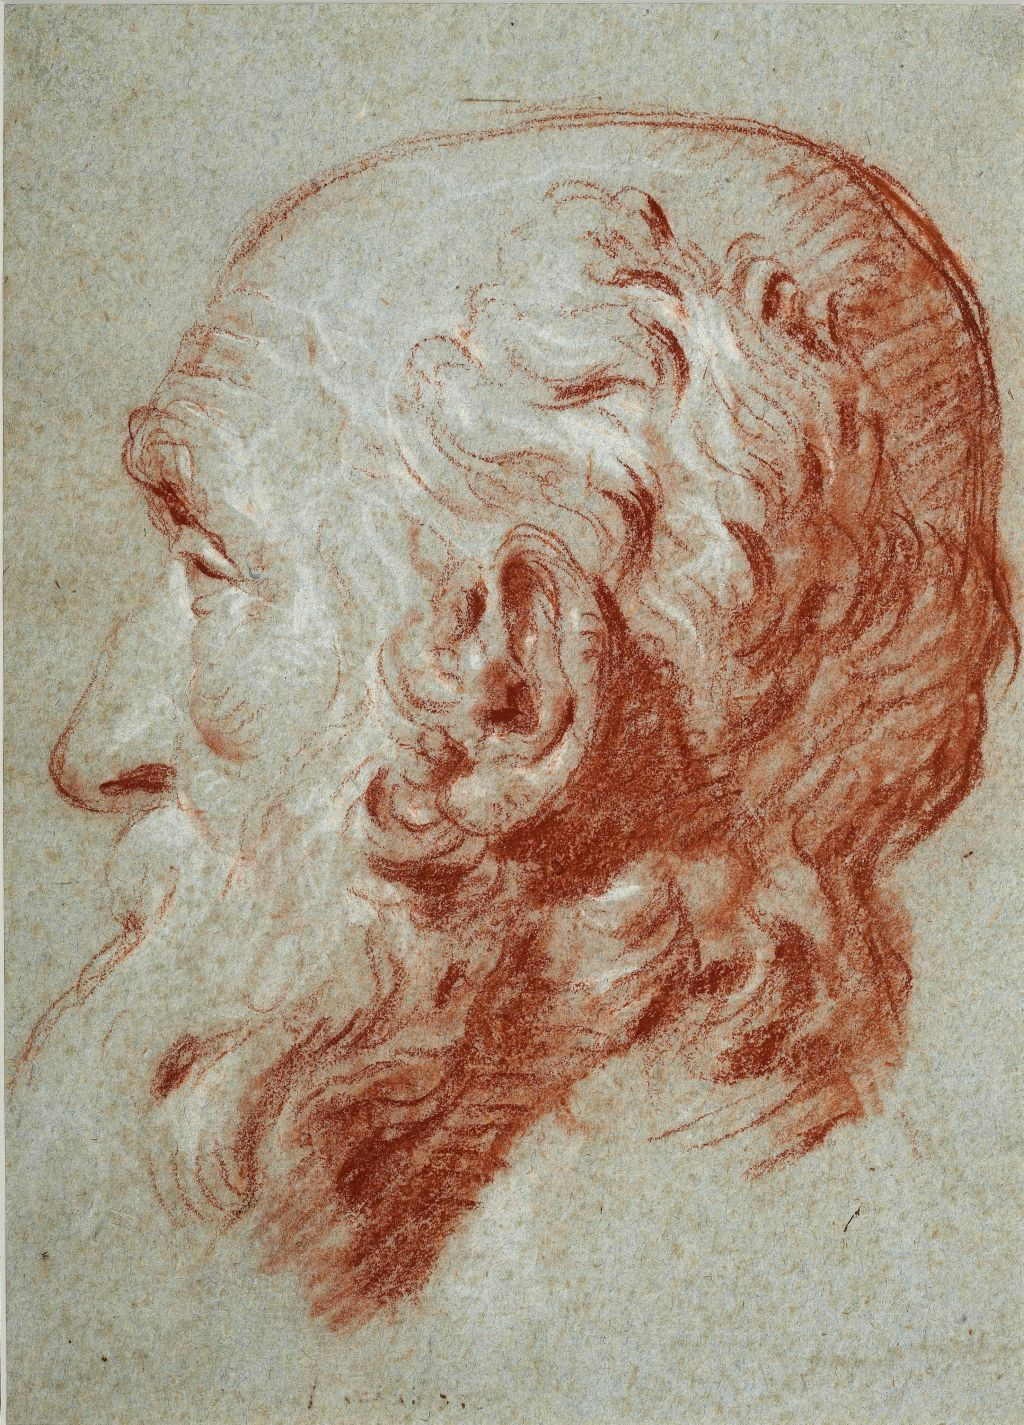 Head of Giulio Contarini, after a bust of Alessandro Vittoria, Giovanni Battista Tiepolo